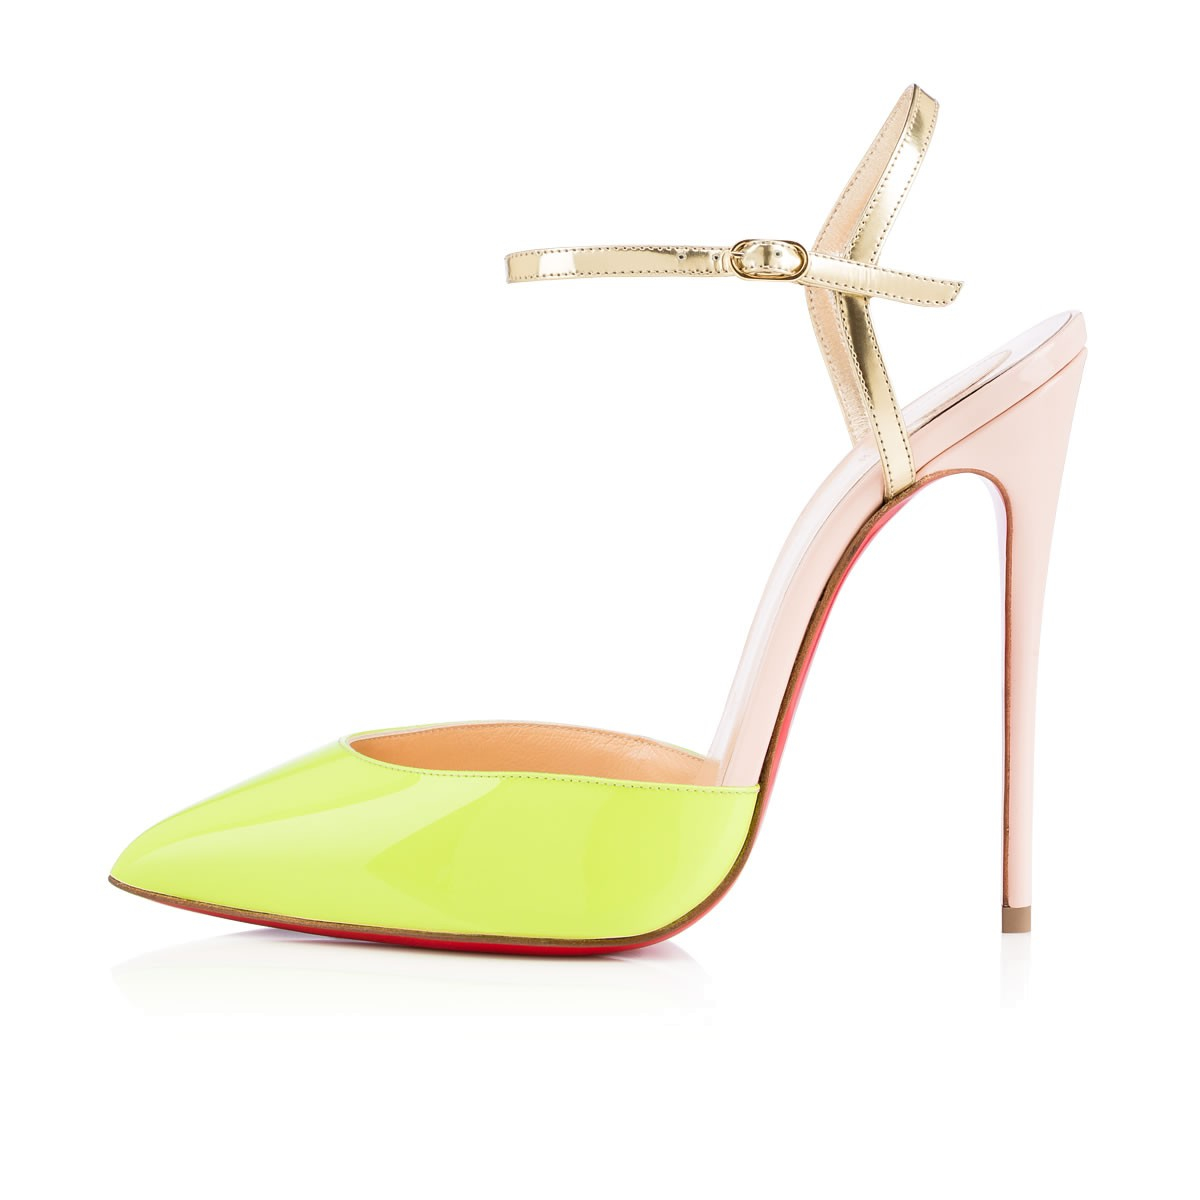 ab30b742e7b7 Lyst - Christian Louboutin Rivierina Color-Blocked Patent Leather ...